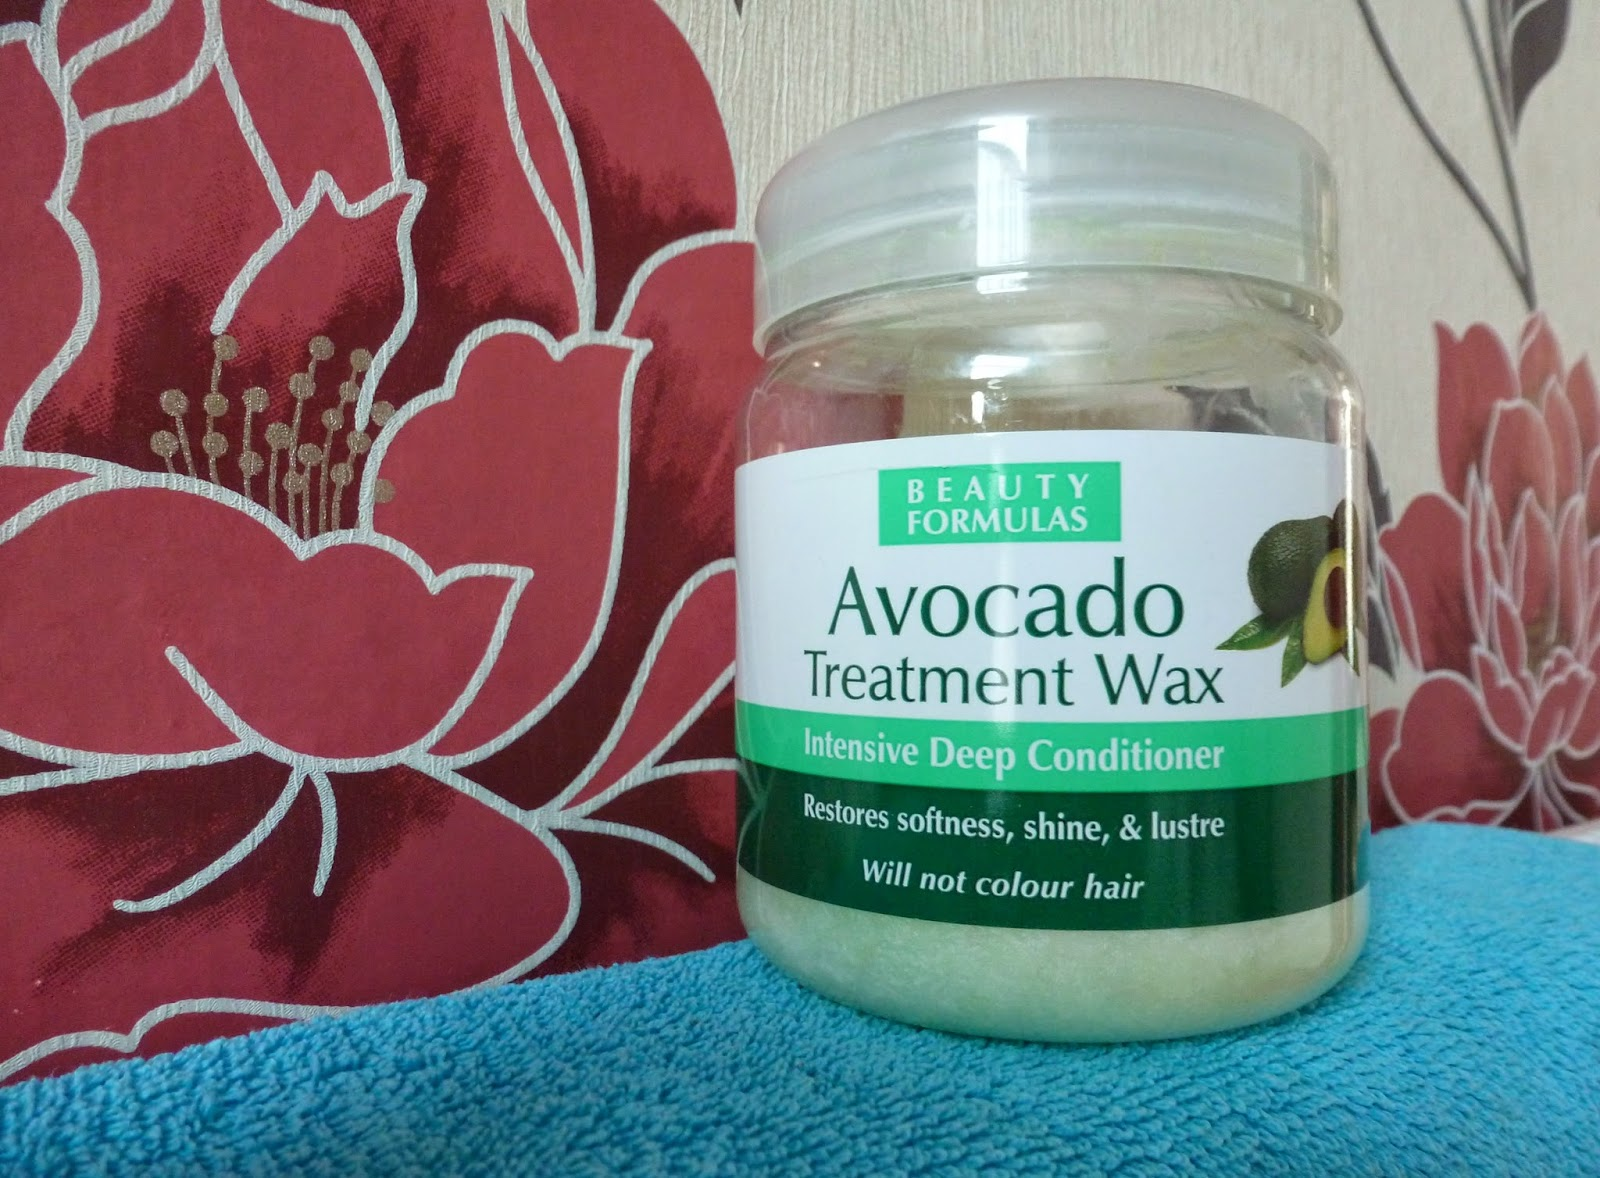 Avocado treatment wax beauty formulas review